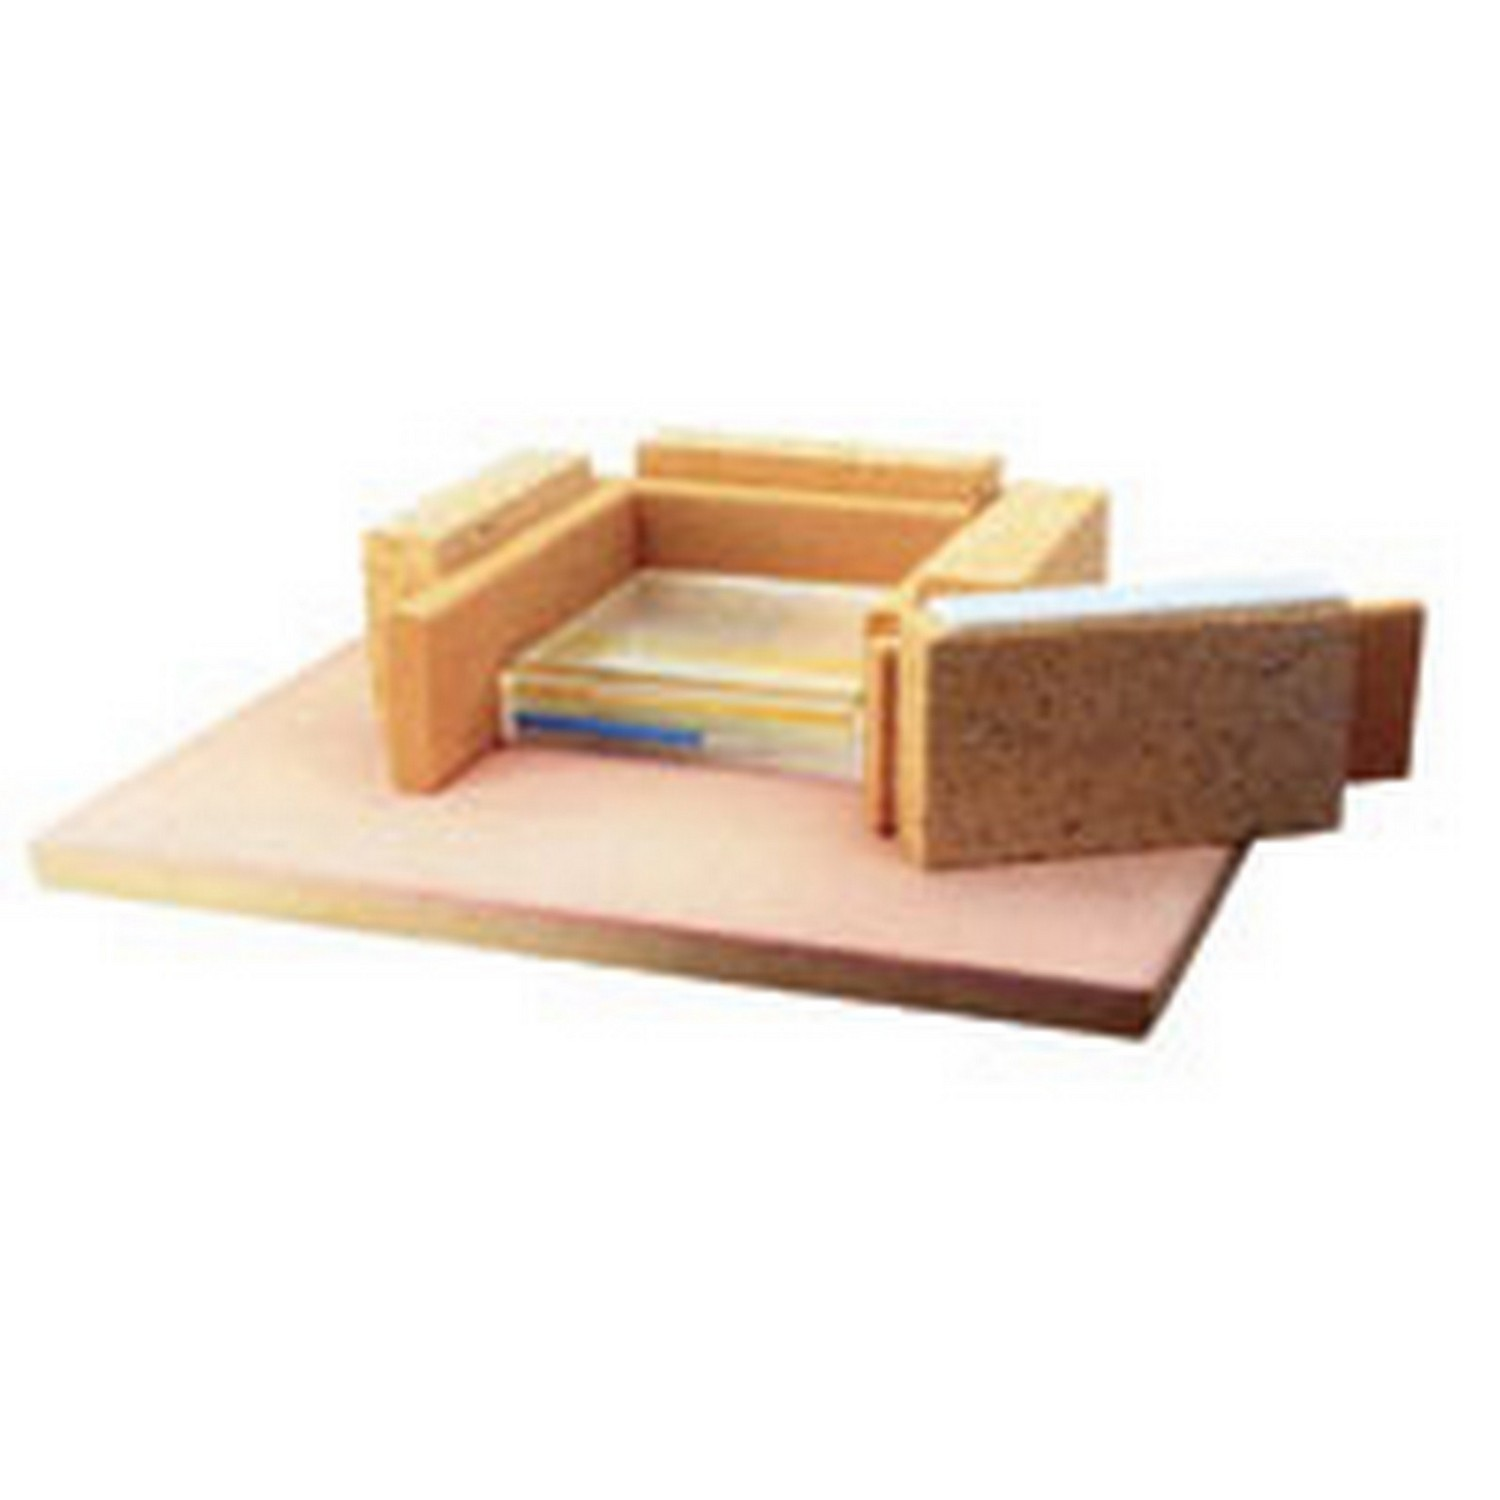 Shelf Paper, Fiber Blanket, Brick